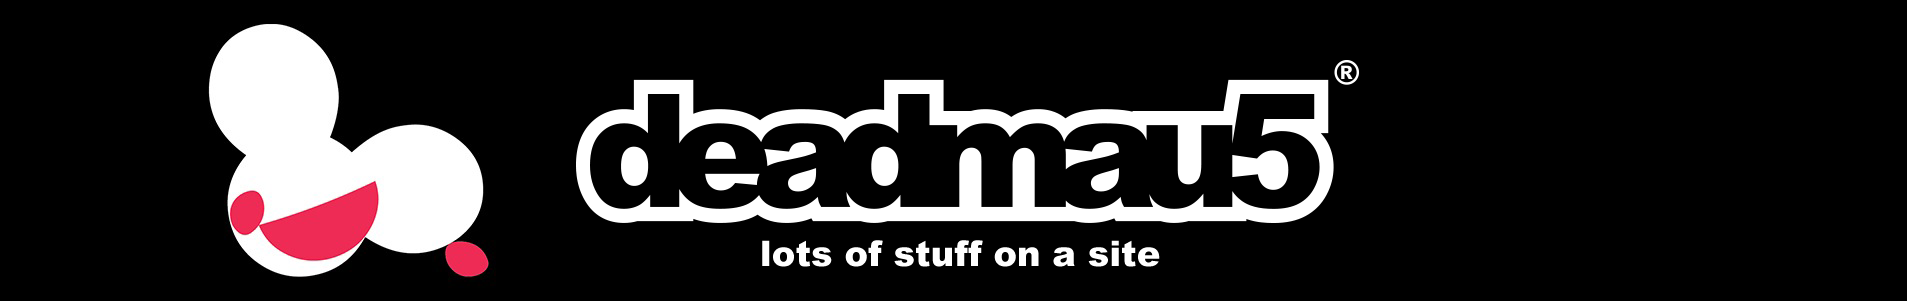 deadmau5merch logo